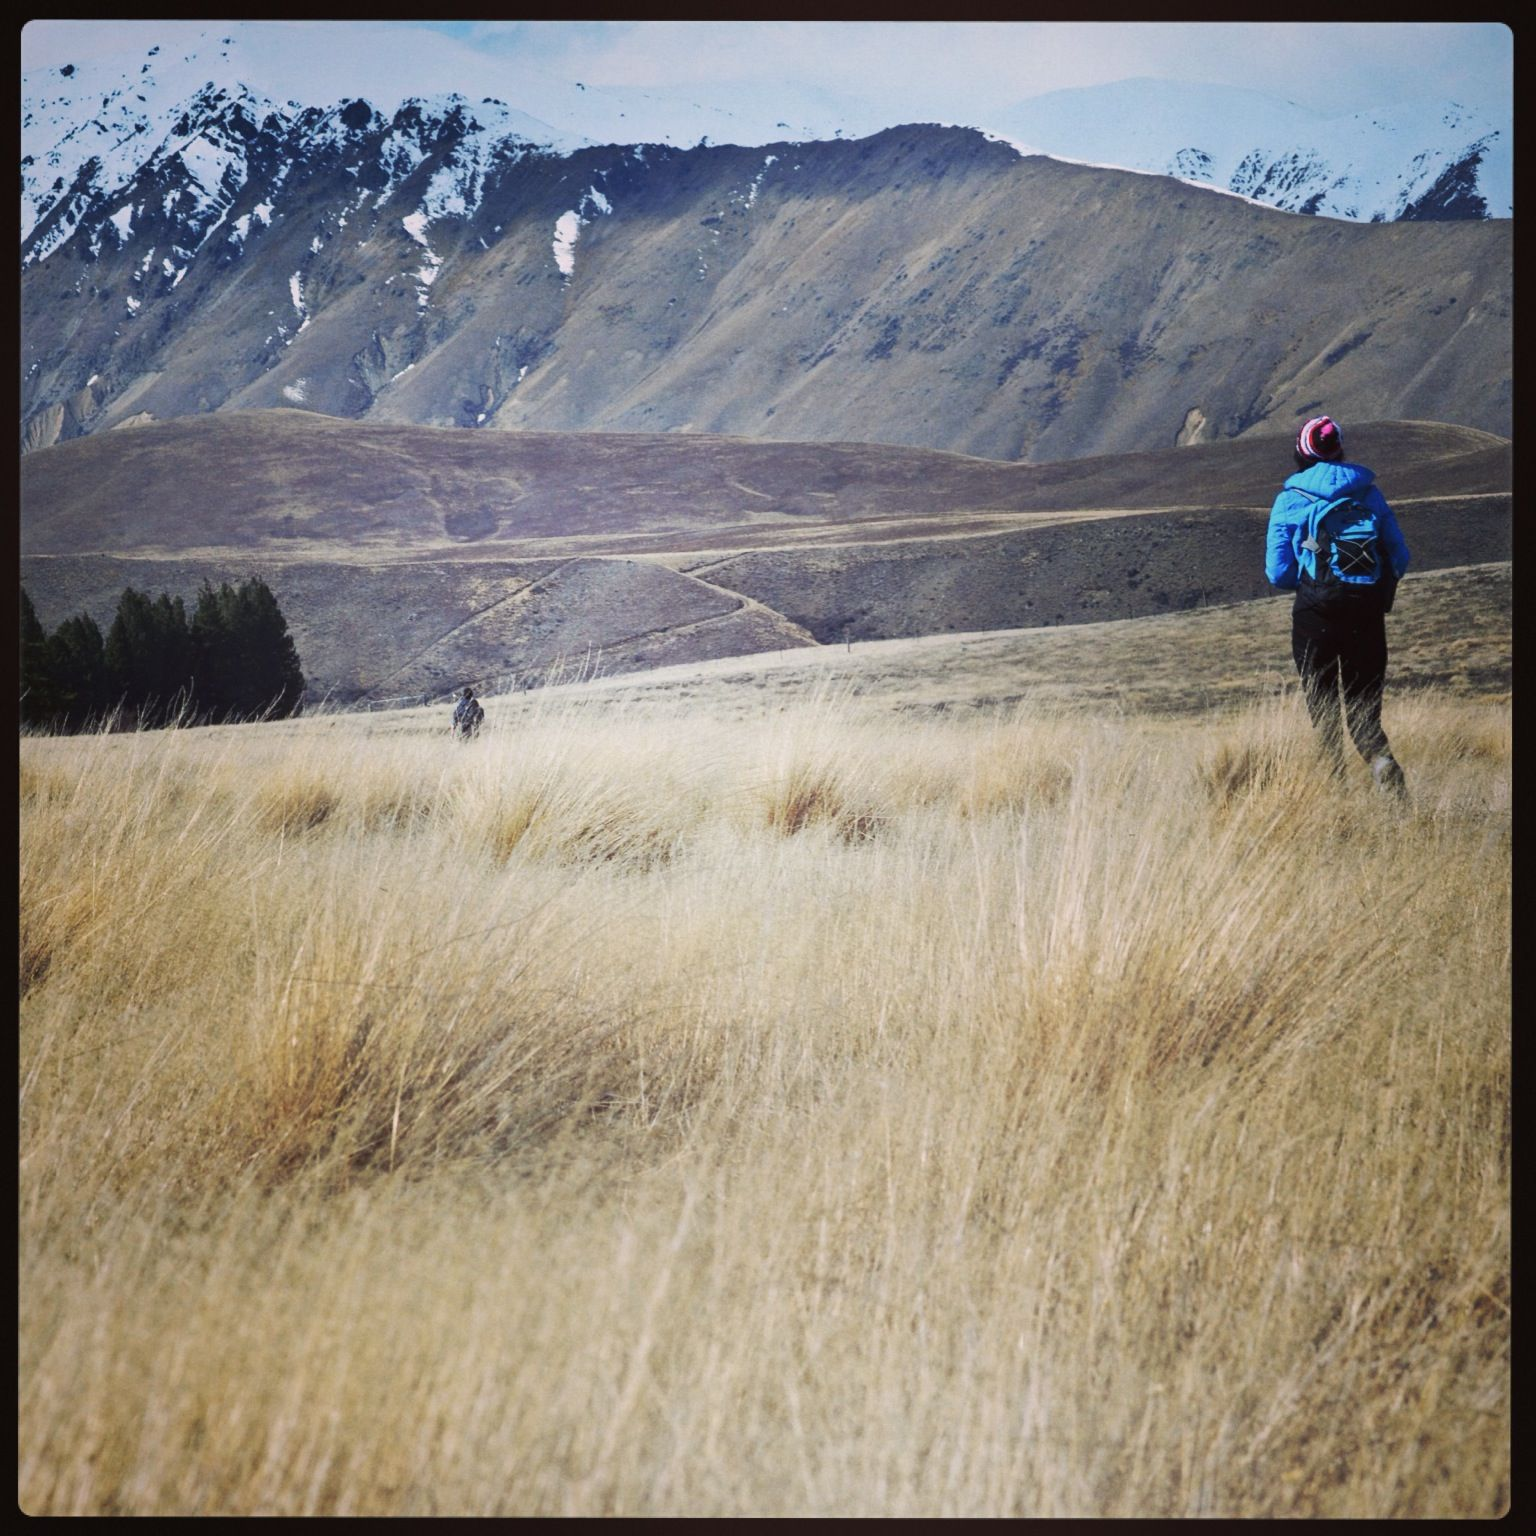 """""""Adventures are funny things. They offer dark uncertain times. Forks in the road, and choices between comfort and peril. In such times heroes can be made or undone."""" #laketekapo"""